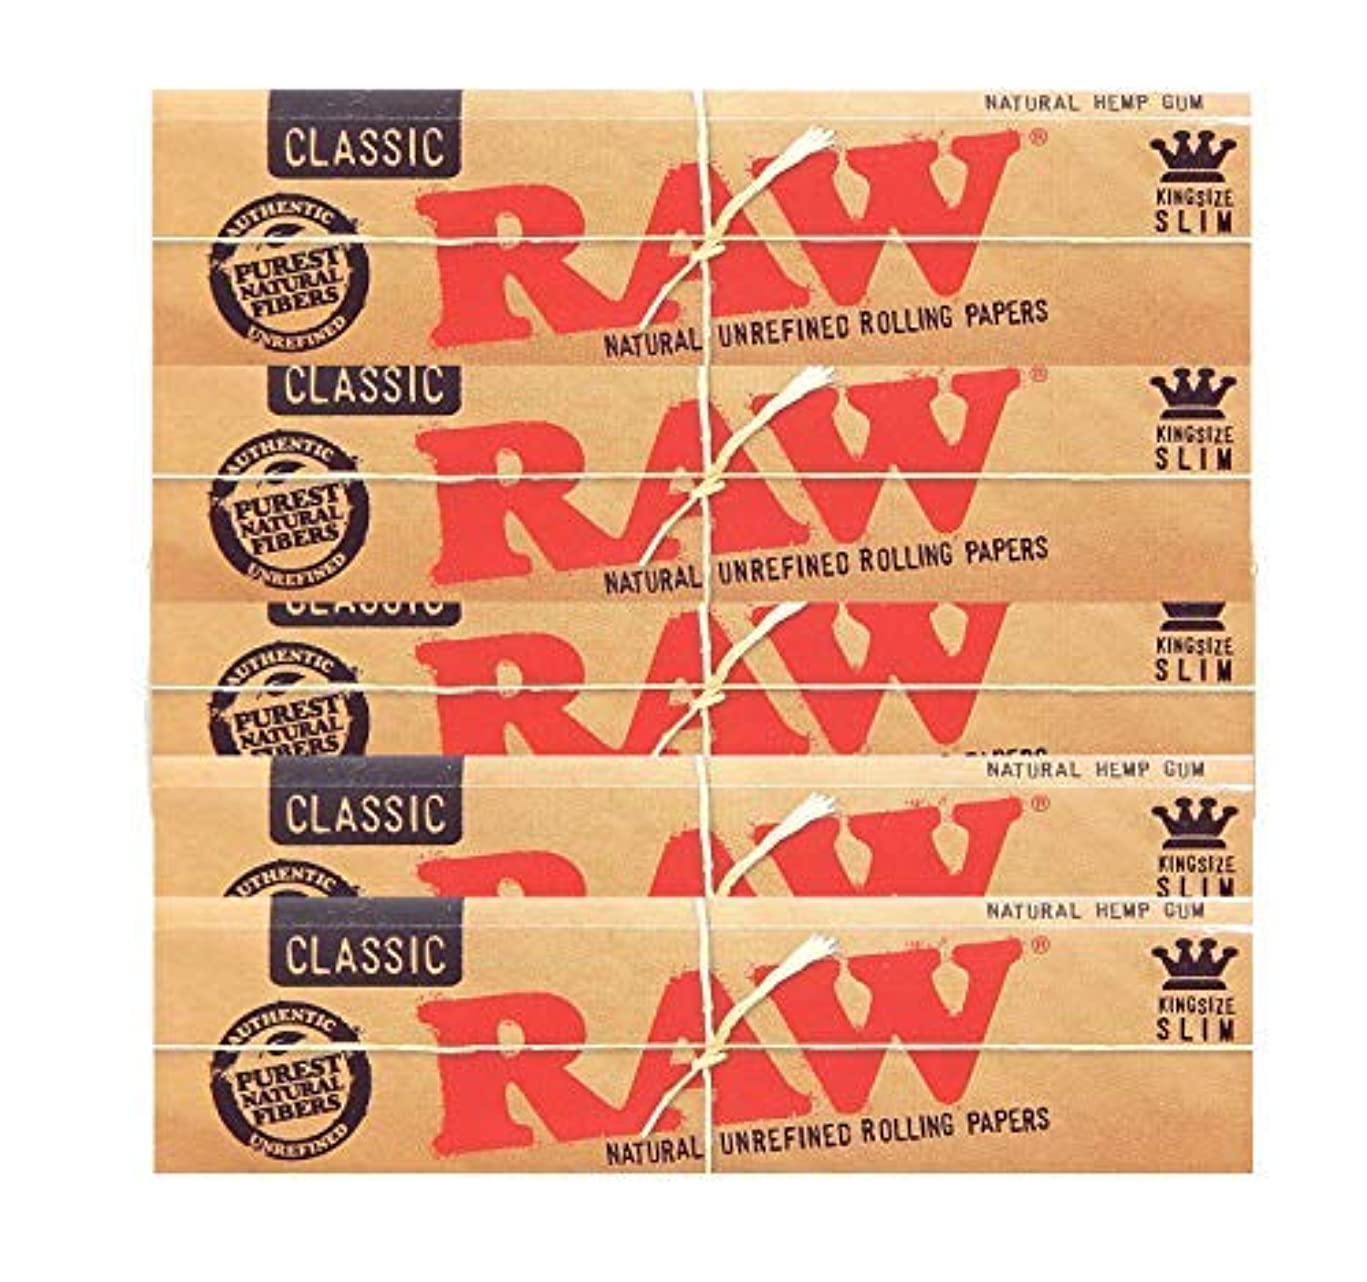 Raw Classic King Size Slim Rolling Paper 5 Packs